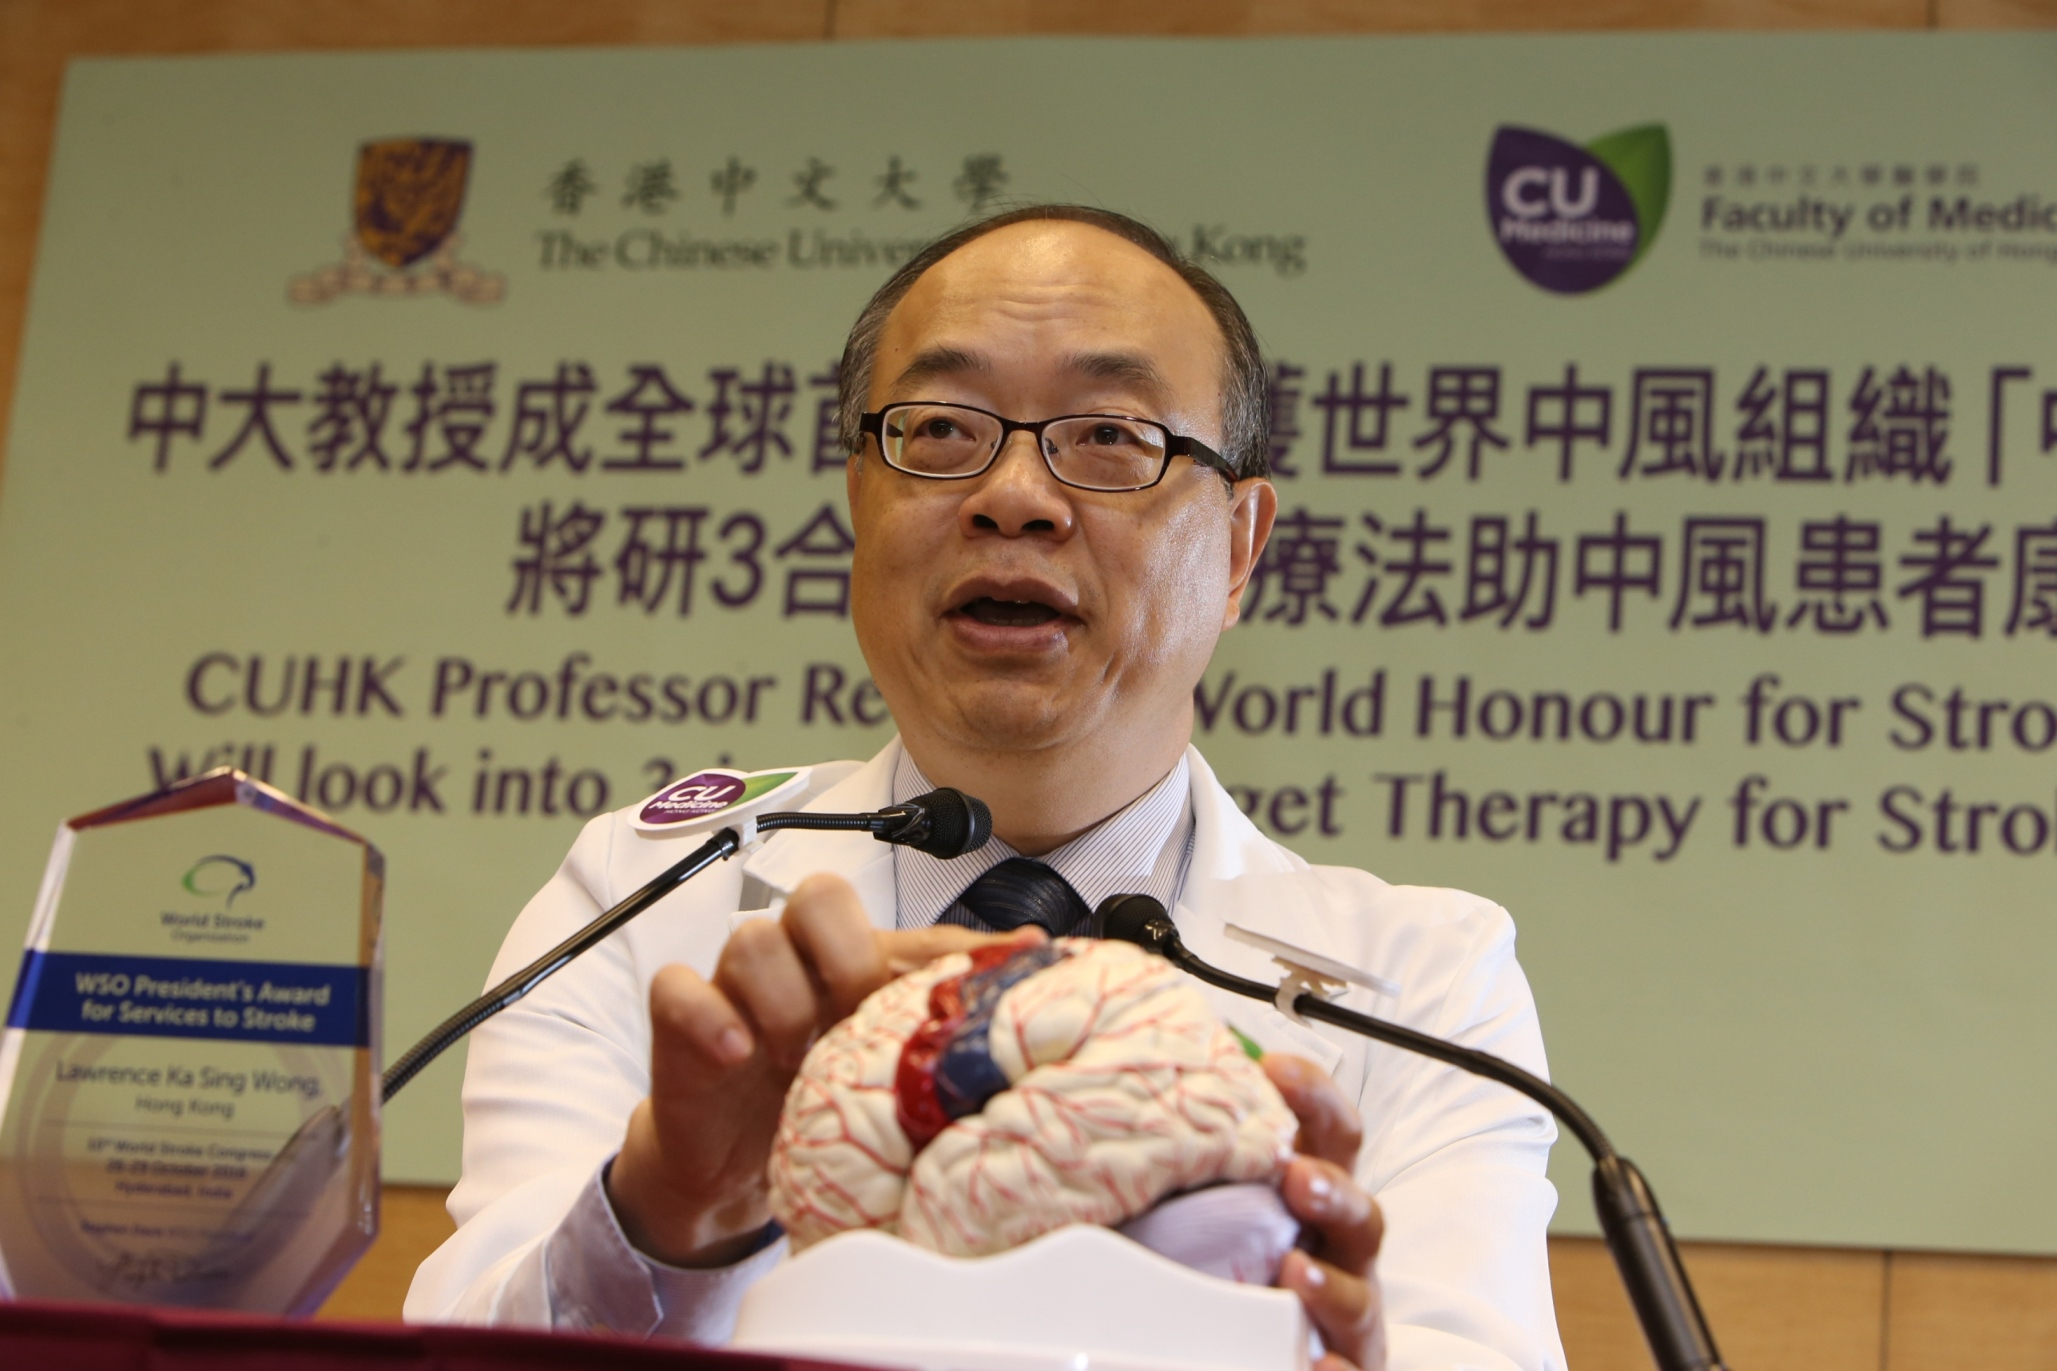 Prof. Lawrence Ka Sing WONG explains 'PMS' can help on the recovery of motor function of the disabled upper limb after stroke by blood flow augmentation to the brain and stimulation of surviving brain cells.